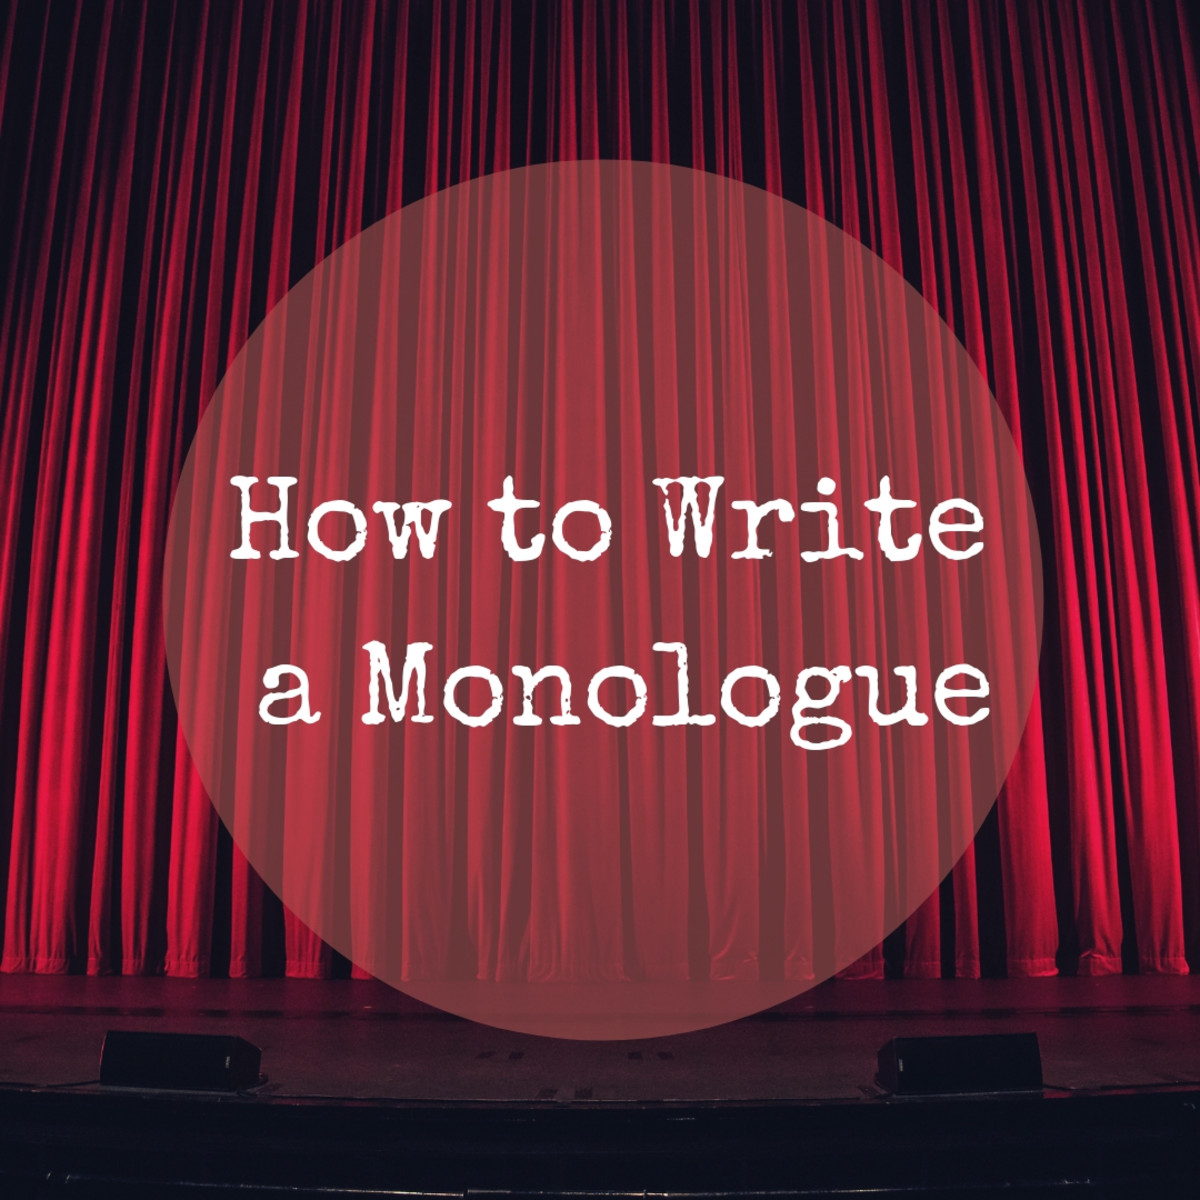 Learn how to write an original monologue from scratch.